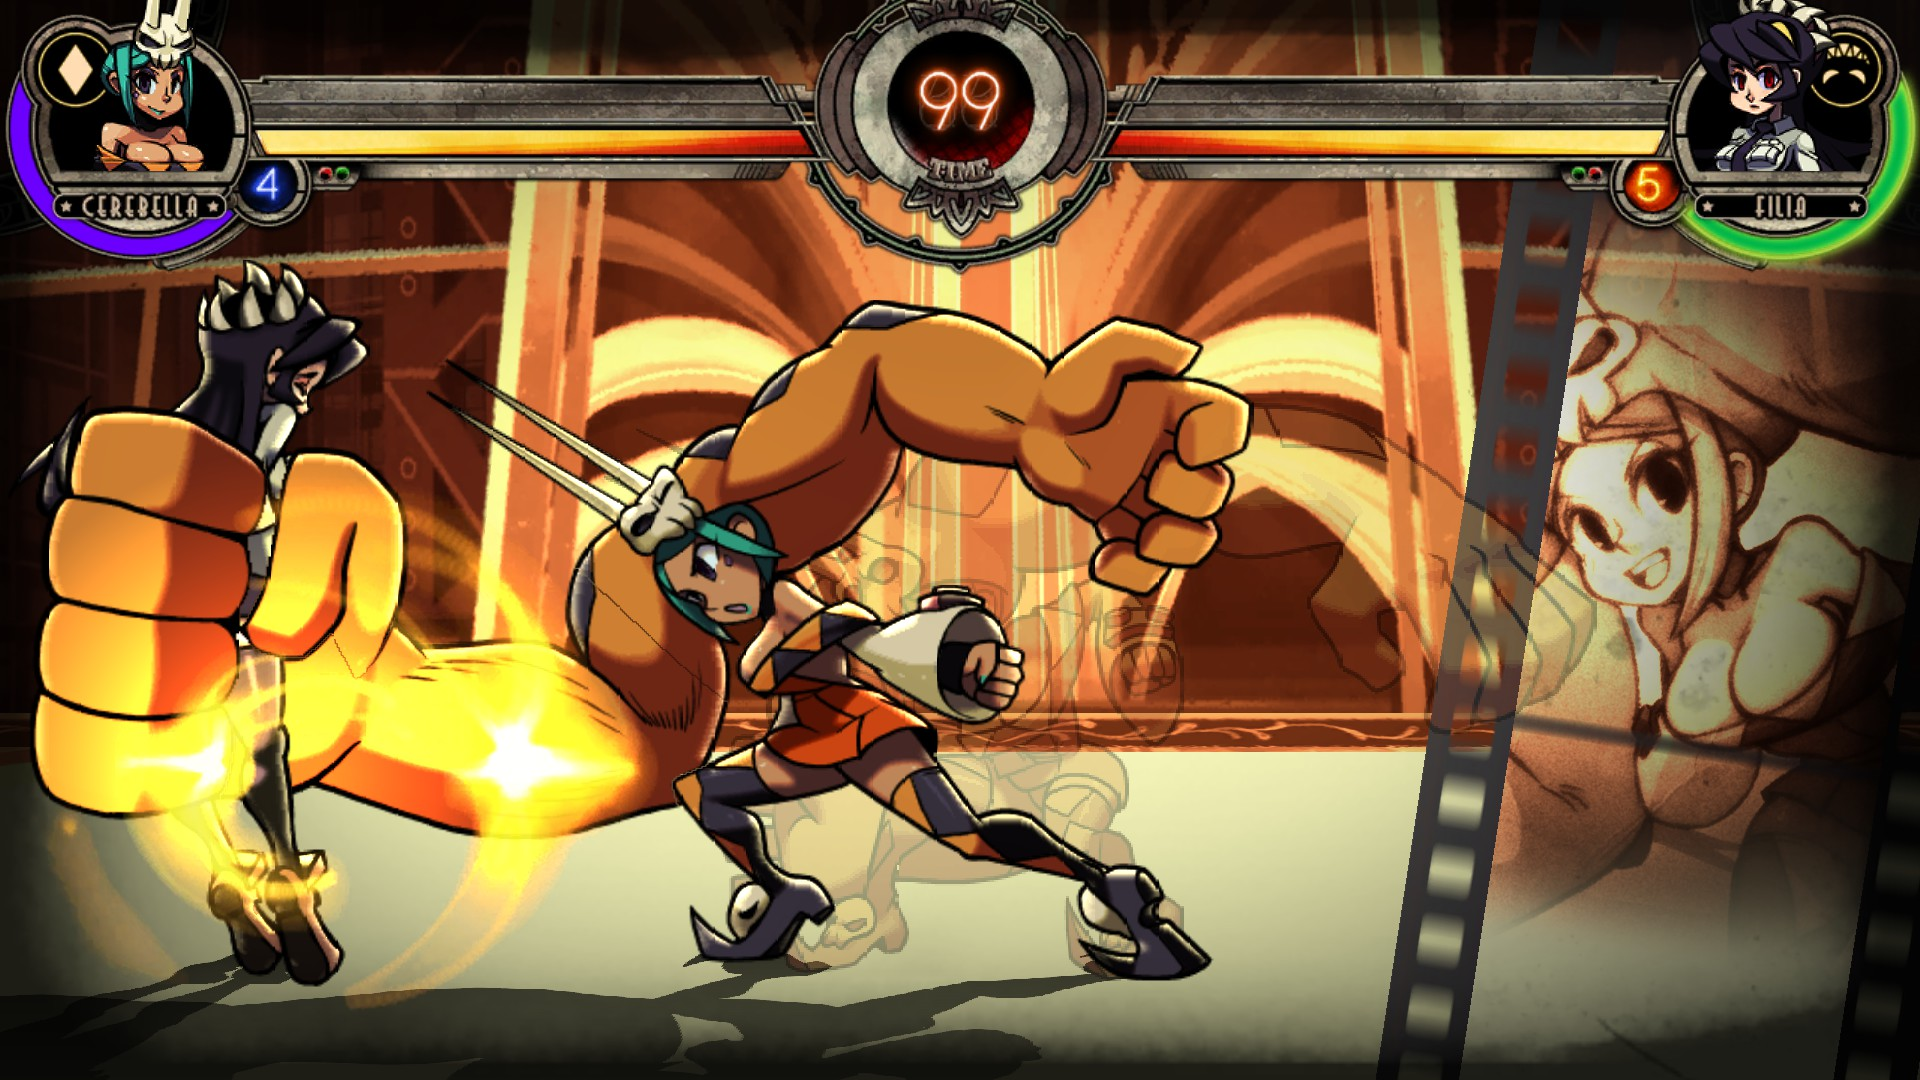 Super Moves (Also called Blockbusters by the Tutorial) are extremely  powerful attacks that consume levels of your Super Meter. They're done with  the exact ...